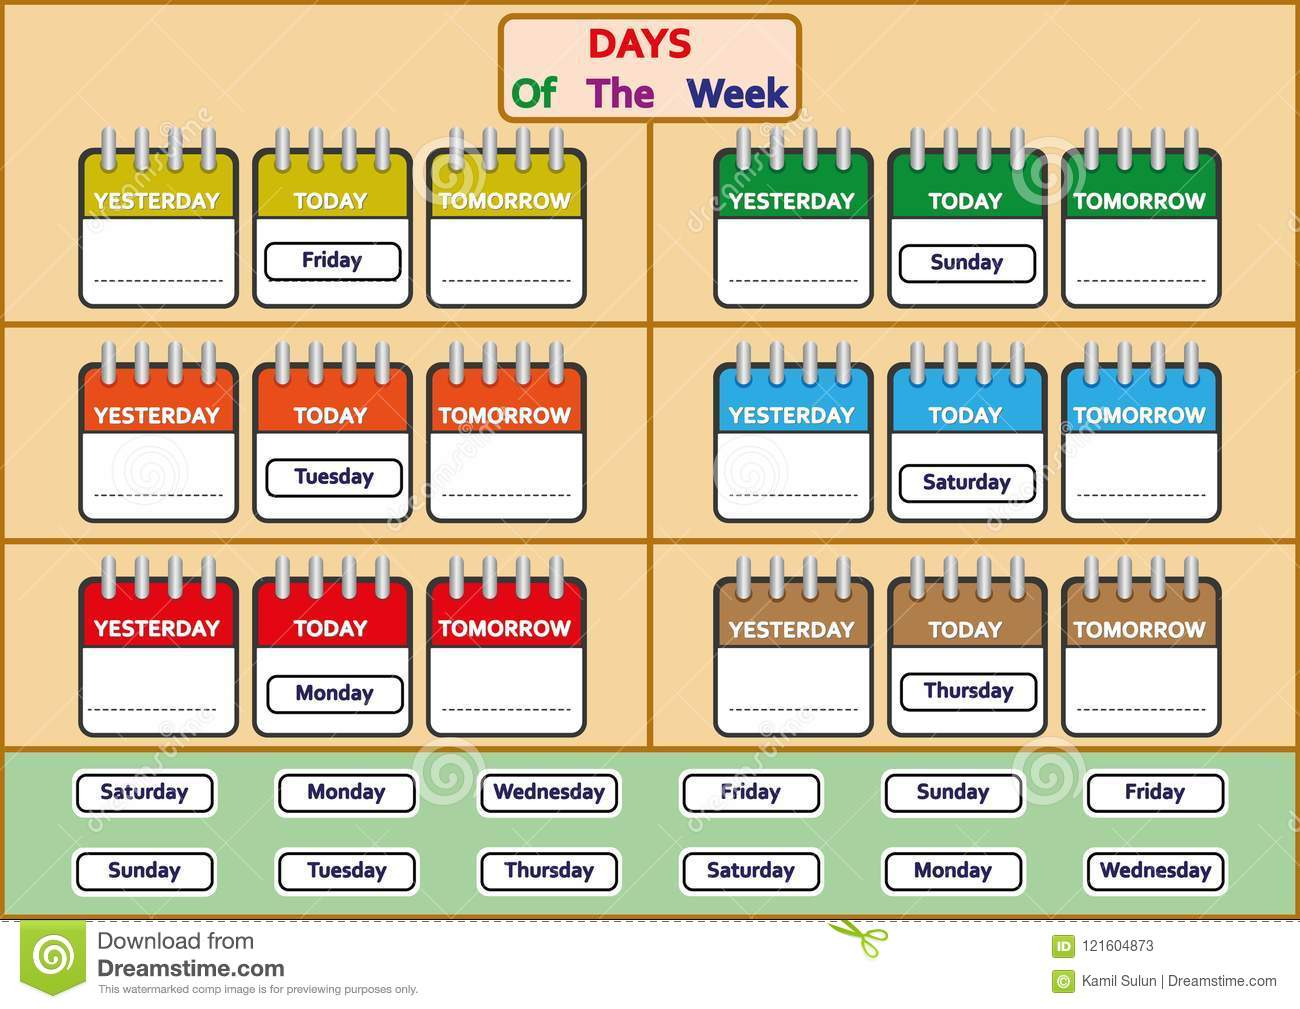 Days Of The Week Worksheets Trace And Write The Days Of